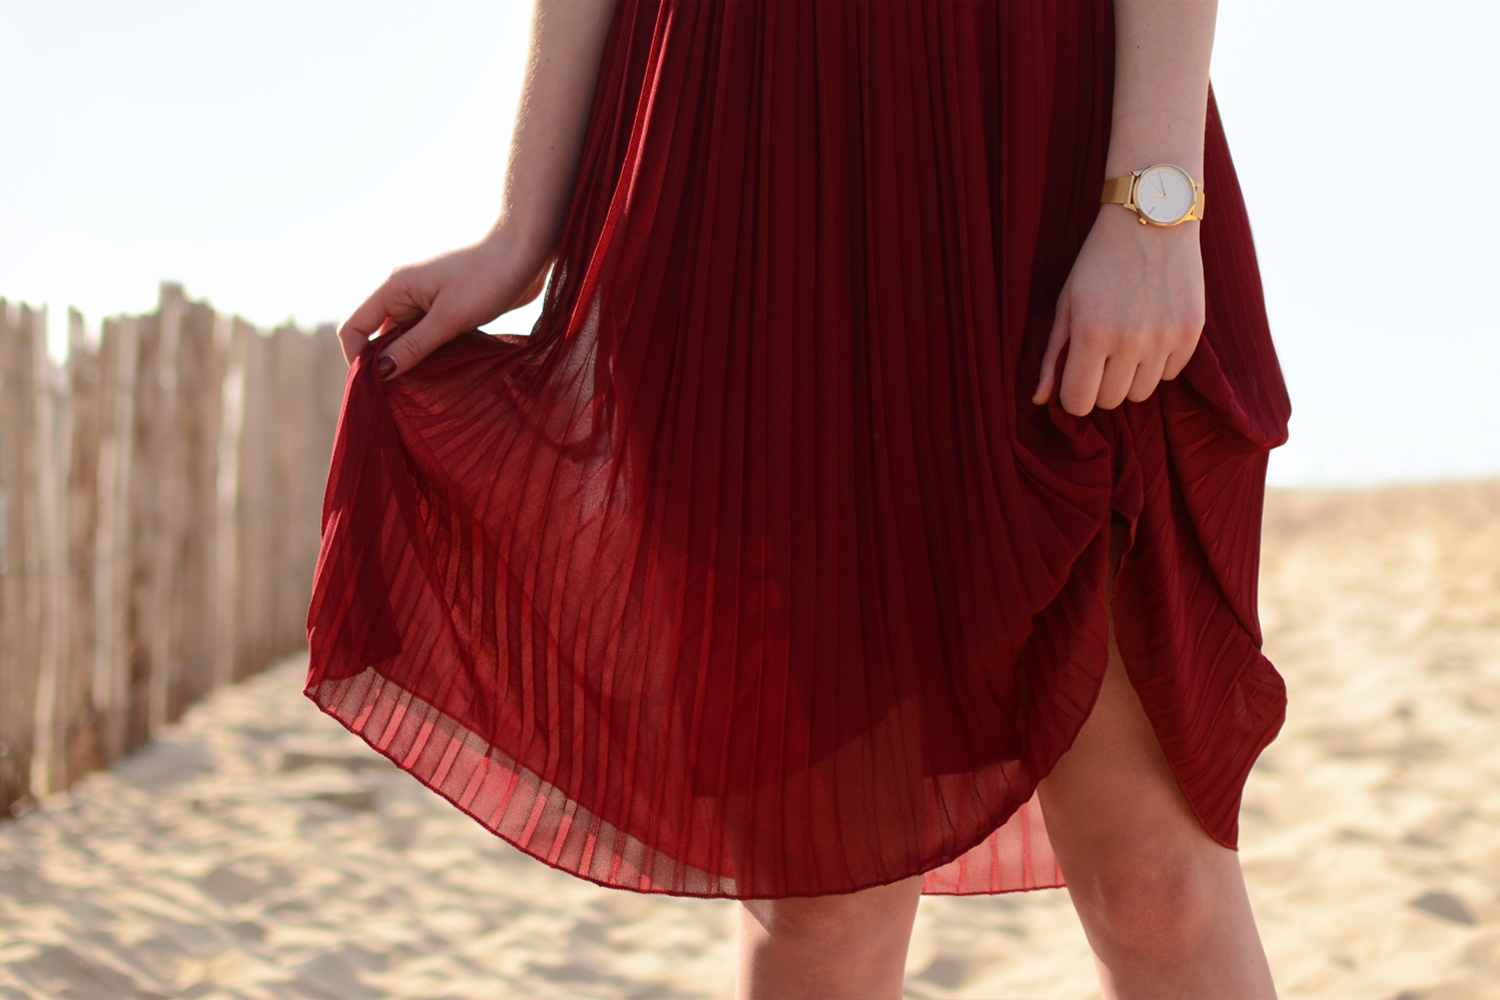 Retromantisch retro romantic fashion blog skirt hat Brixton Komono Estelle Royale watch gold horloge burgundy skirt blouse look ruffle style outfit